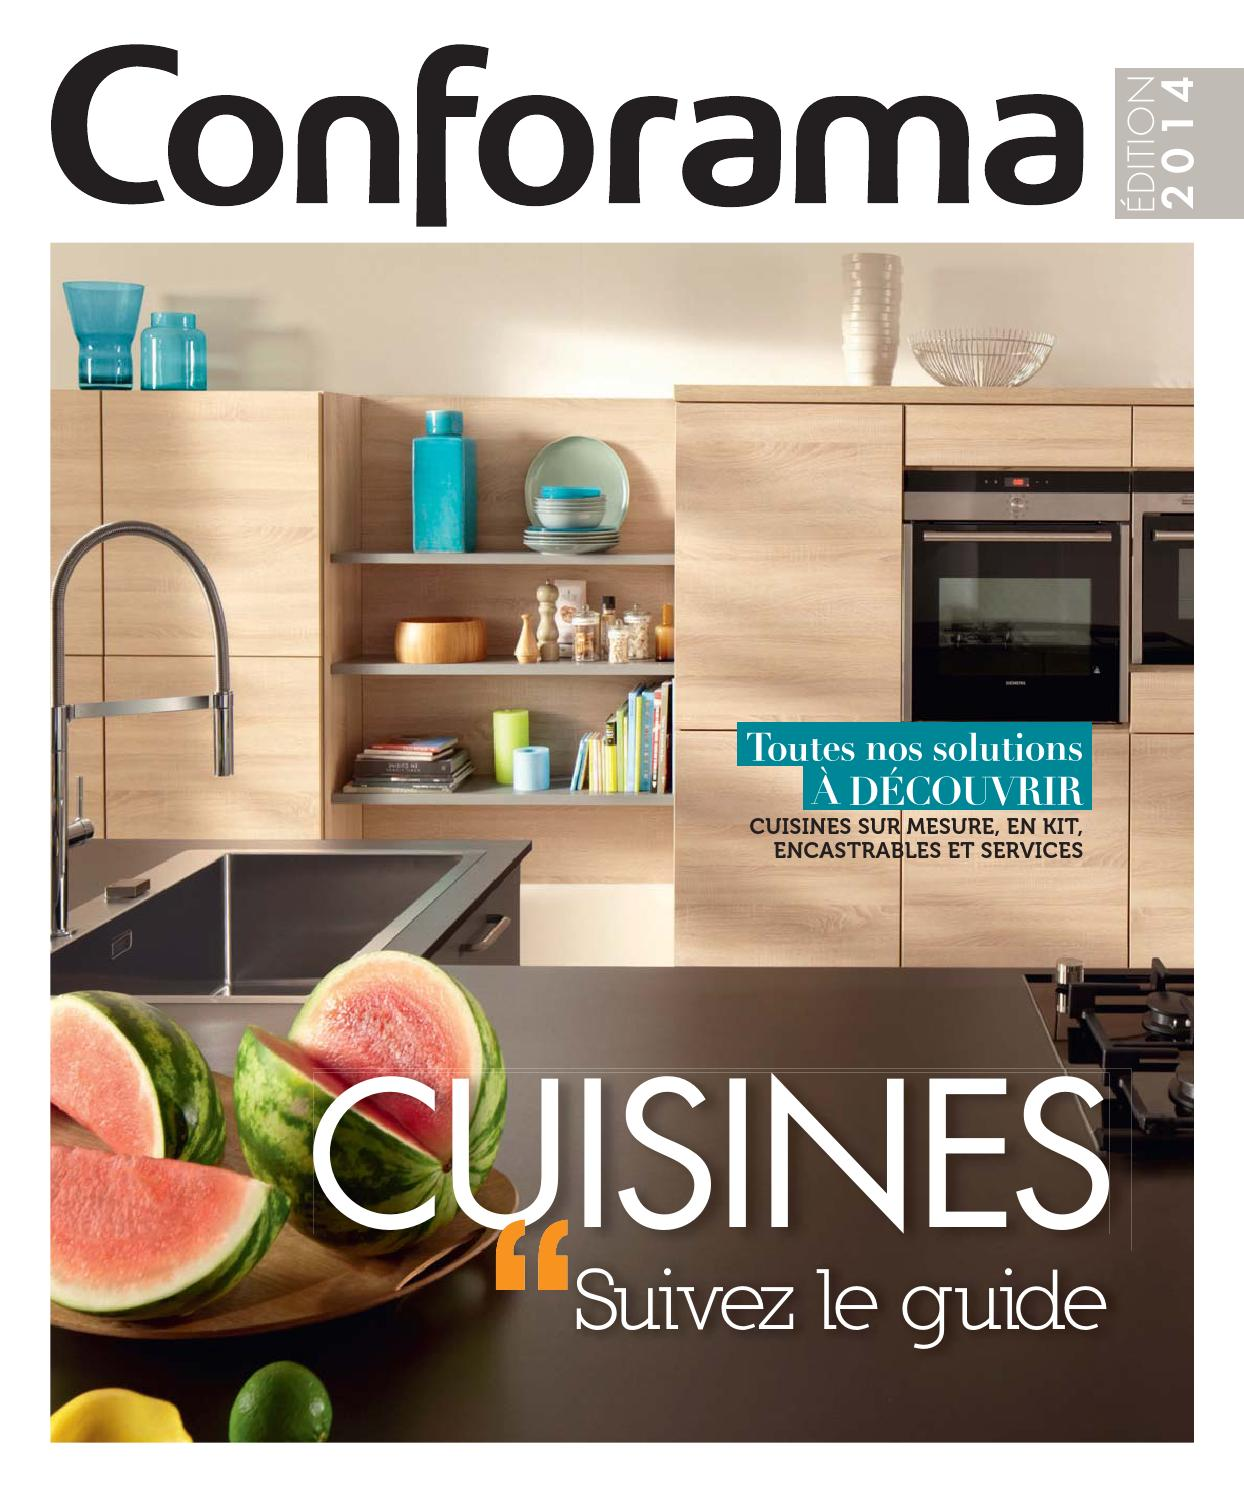 Catalogue conforama guide cuisines 2014 by joe monroe for Catalogue cuisine